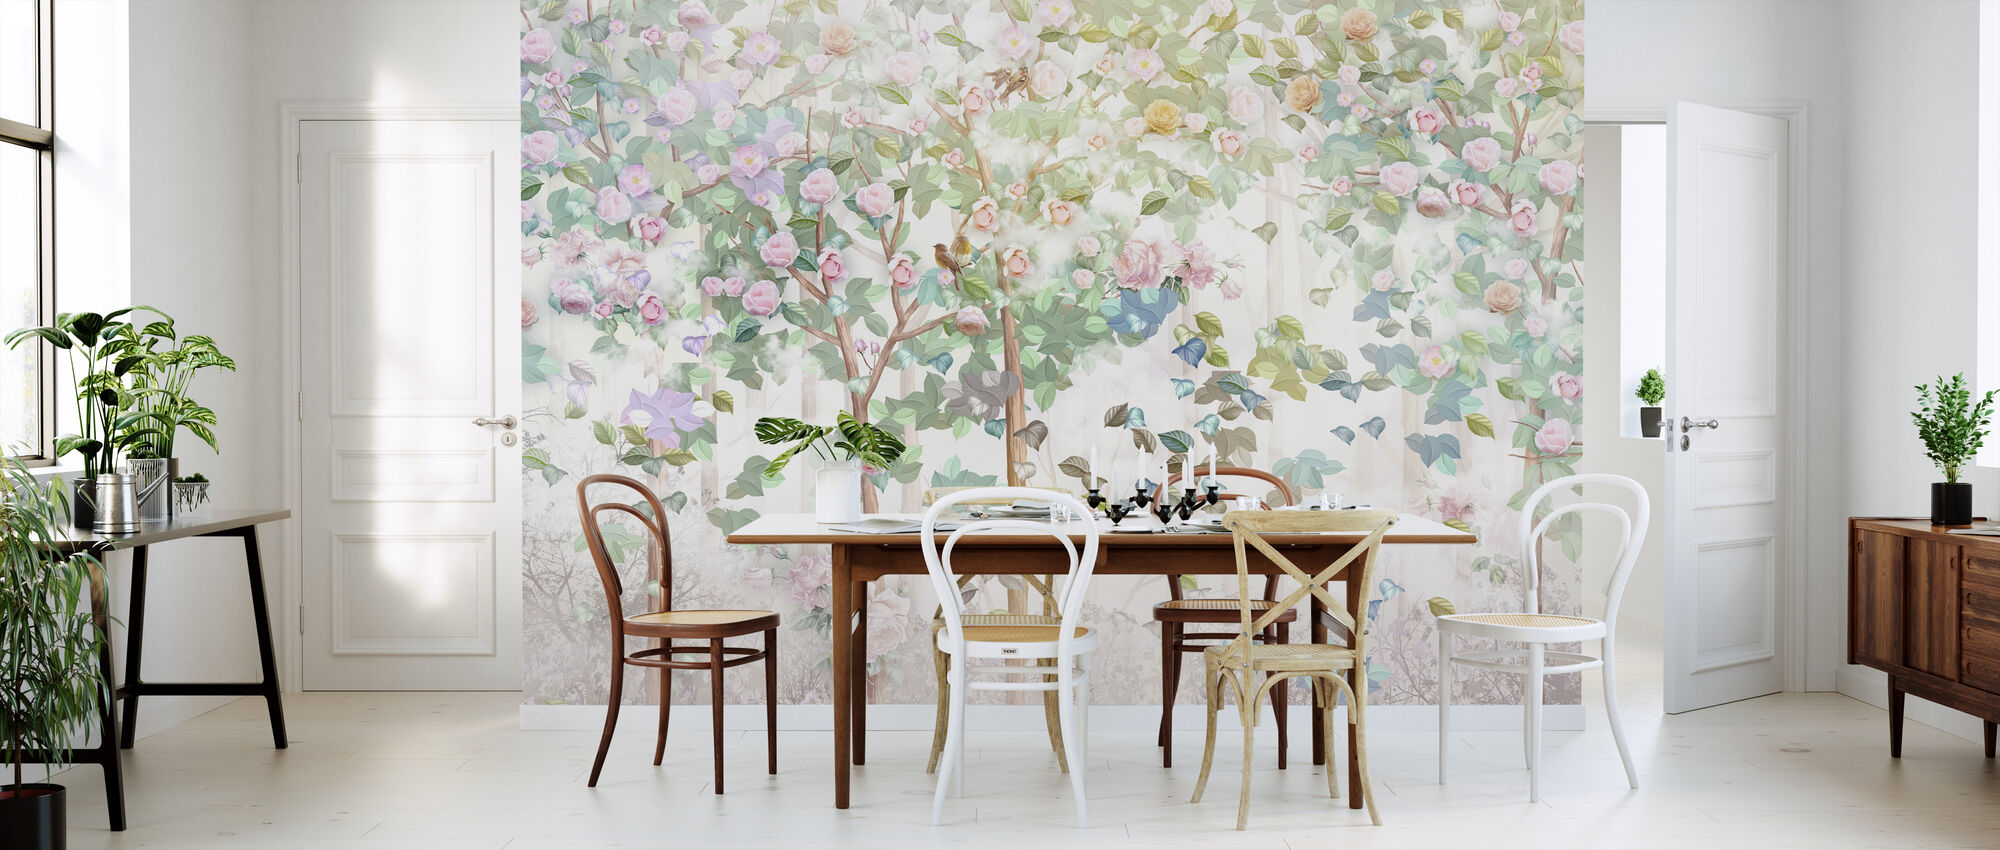 Trees in Bloom - Wallpaper - Kitchen